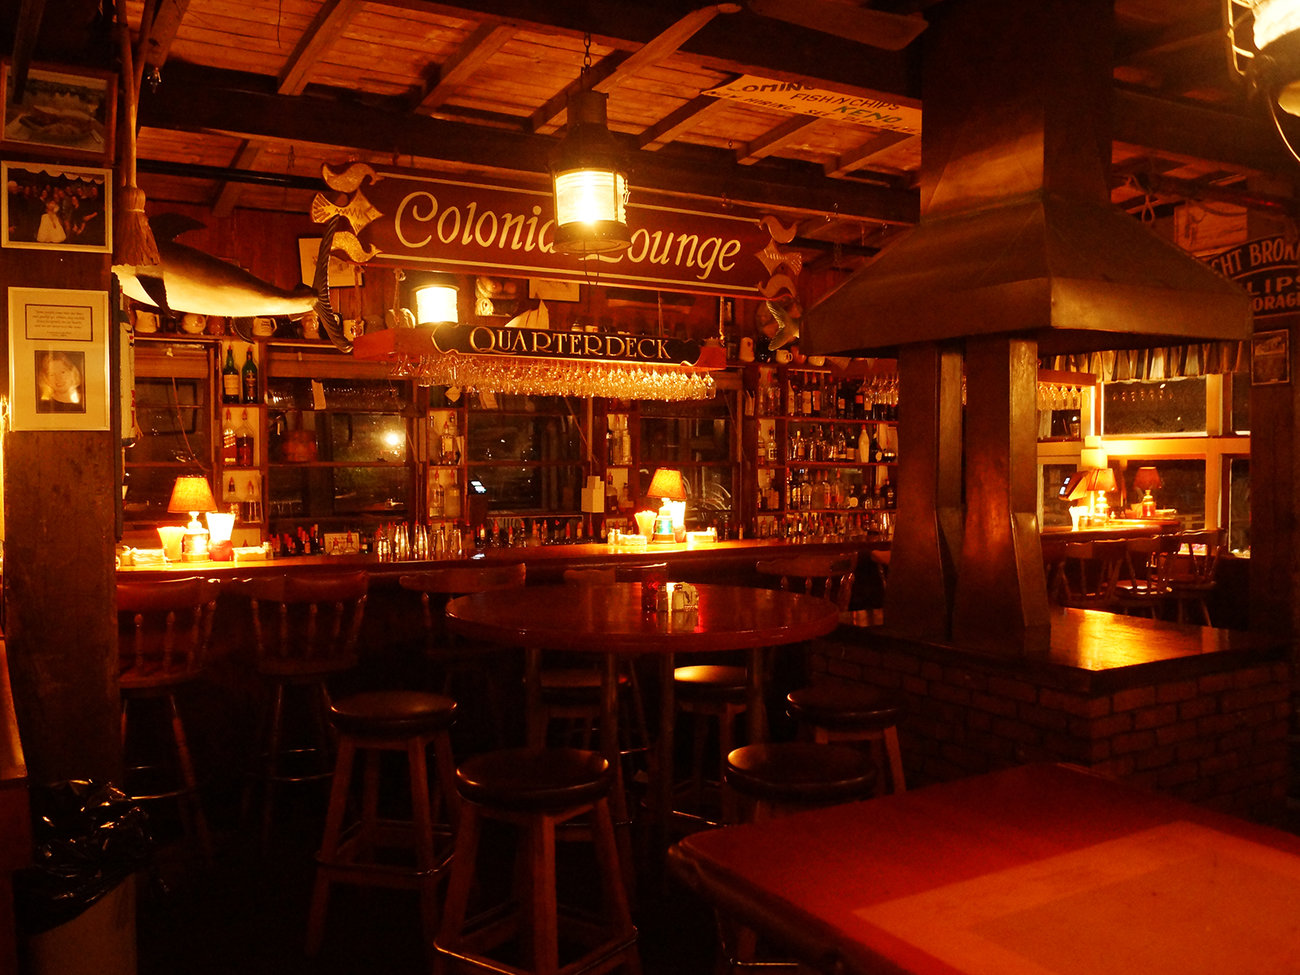 The Chart Room Bar in Cape Cod